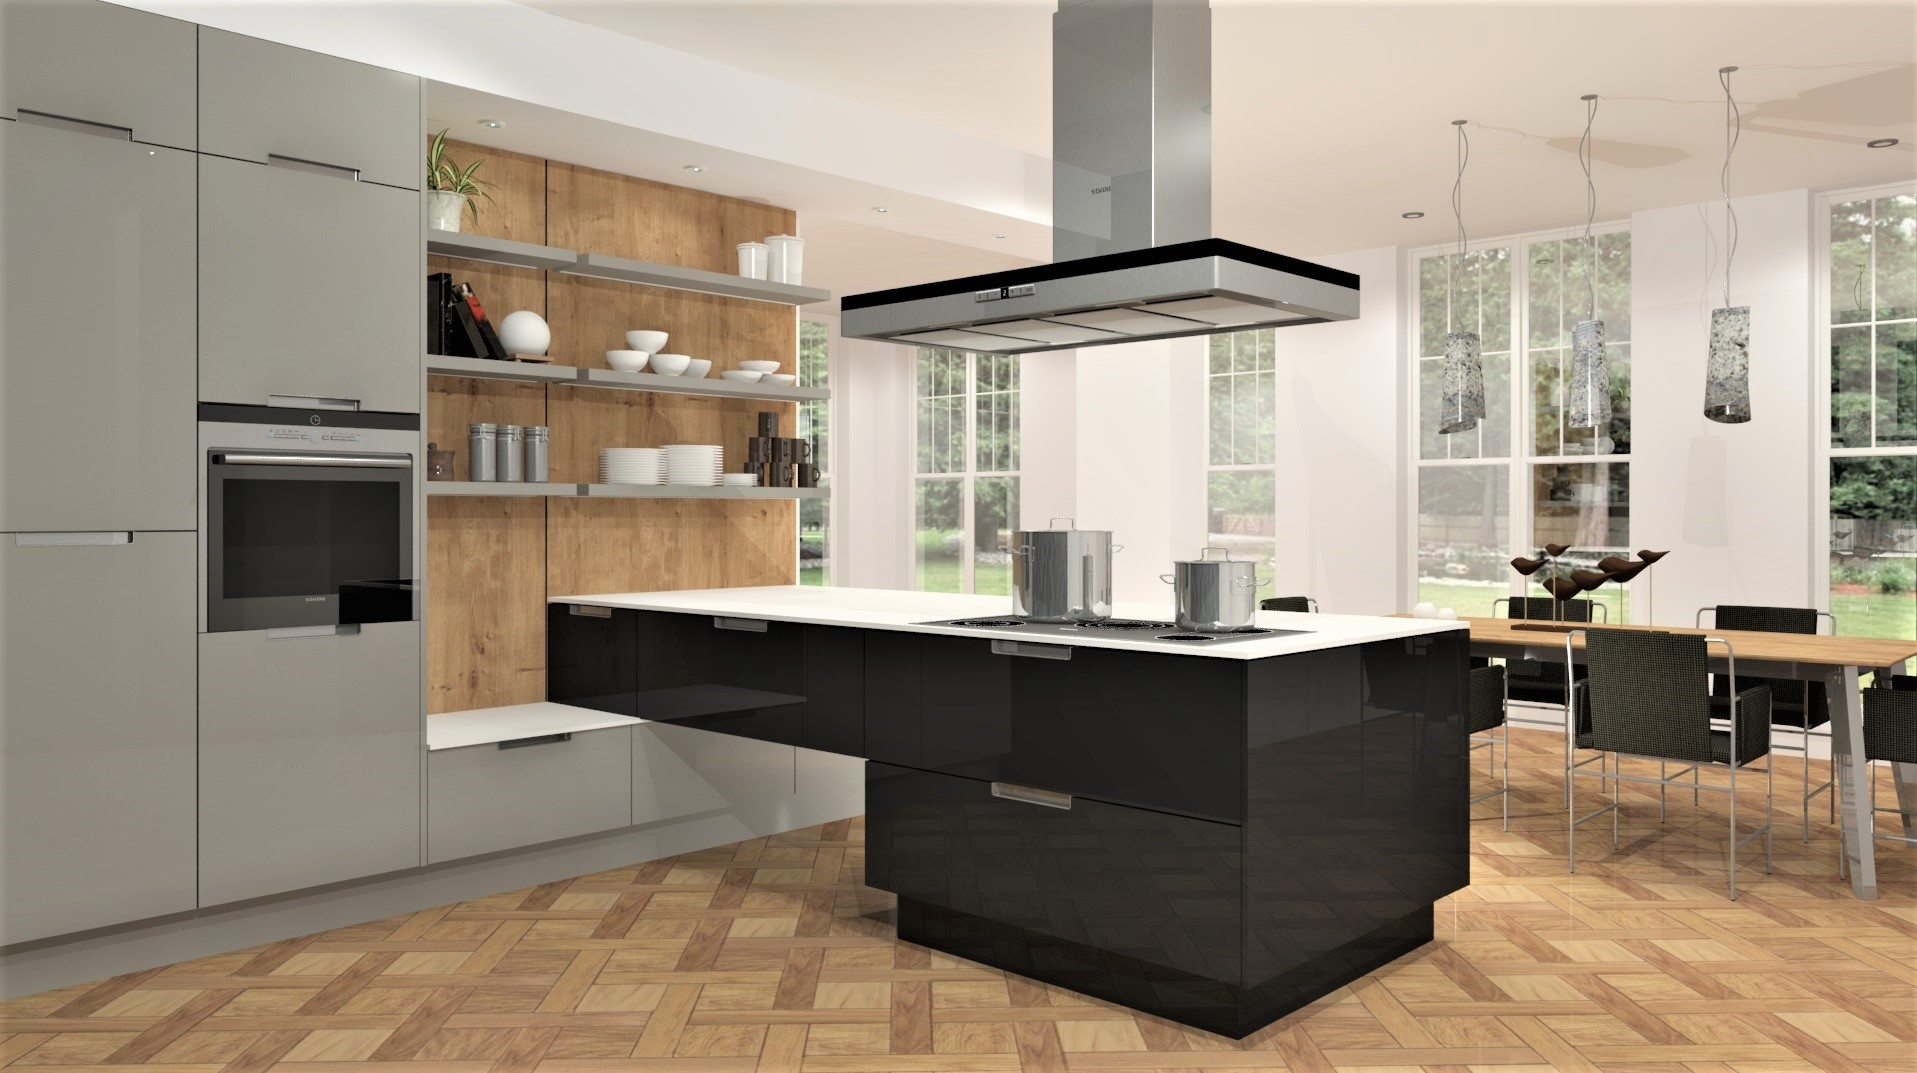 Open Plan Kitchen CAD Render.jpeg